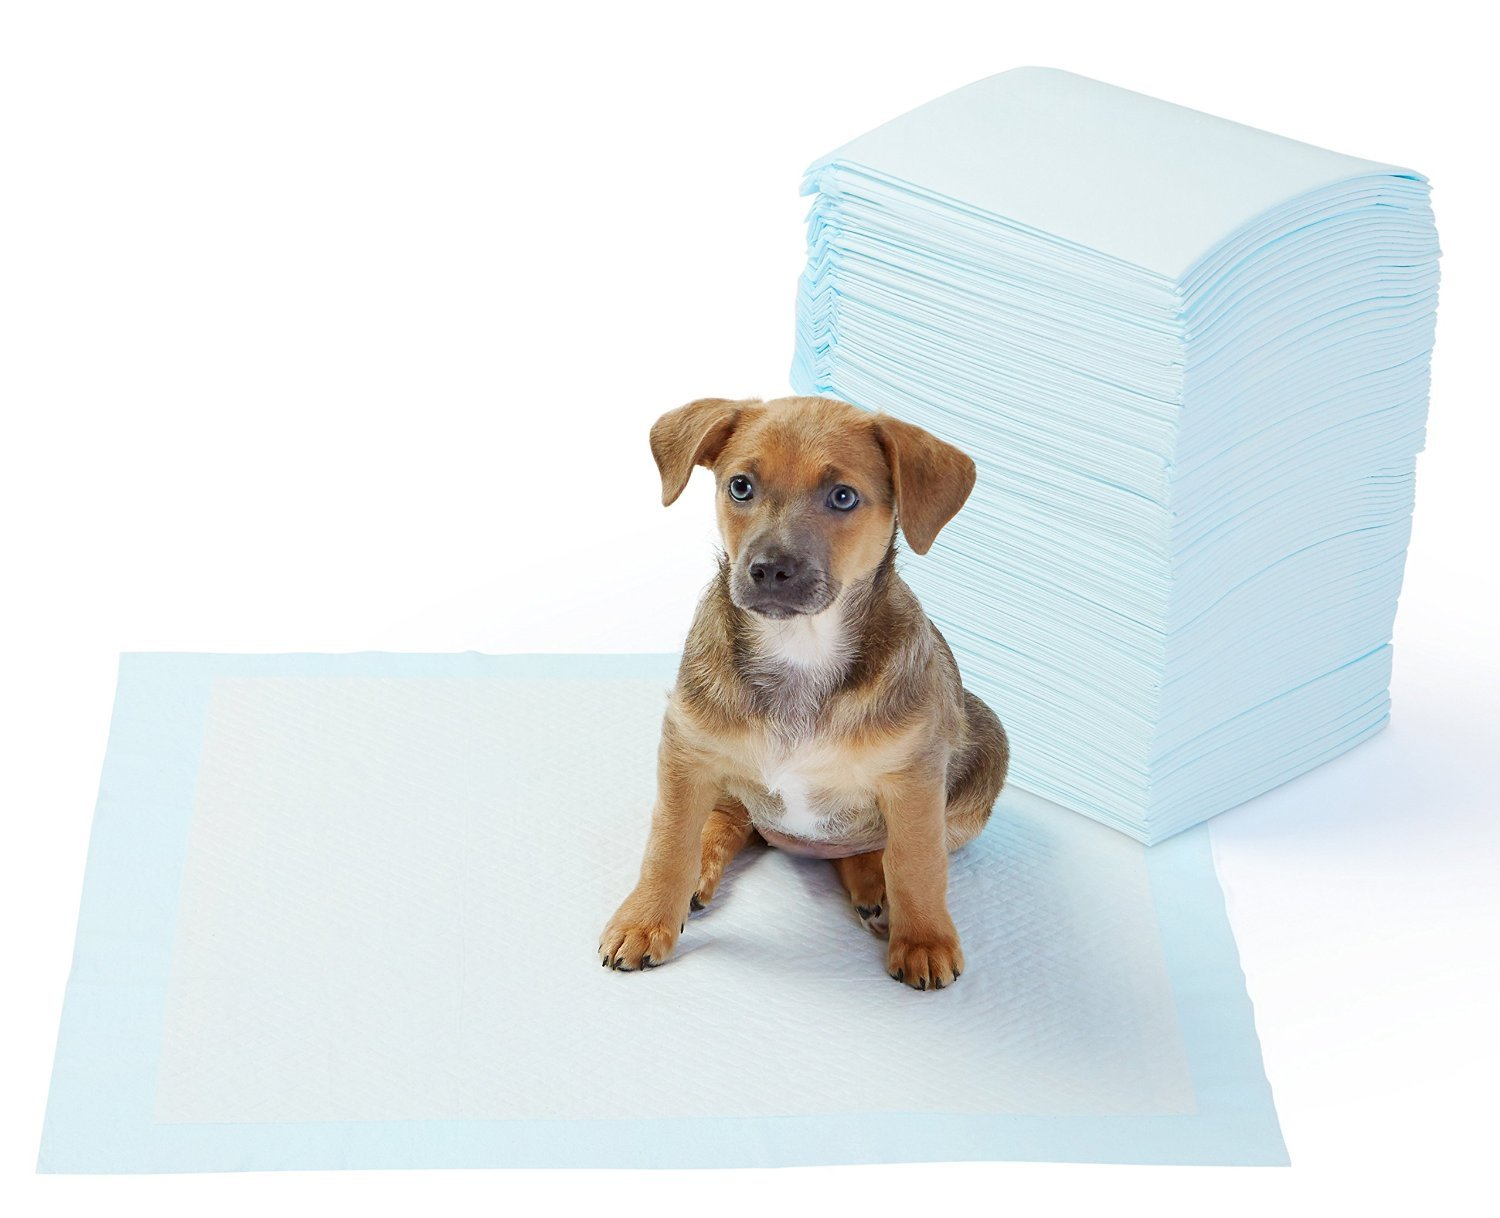 FiNeWaY@ SUPER ABSORBENT PUPPY TRAINER TRAINING PADS TOILET PEE WEE MATS DOG CAT (LARGE (60 X90CM), PACK OF 100)